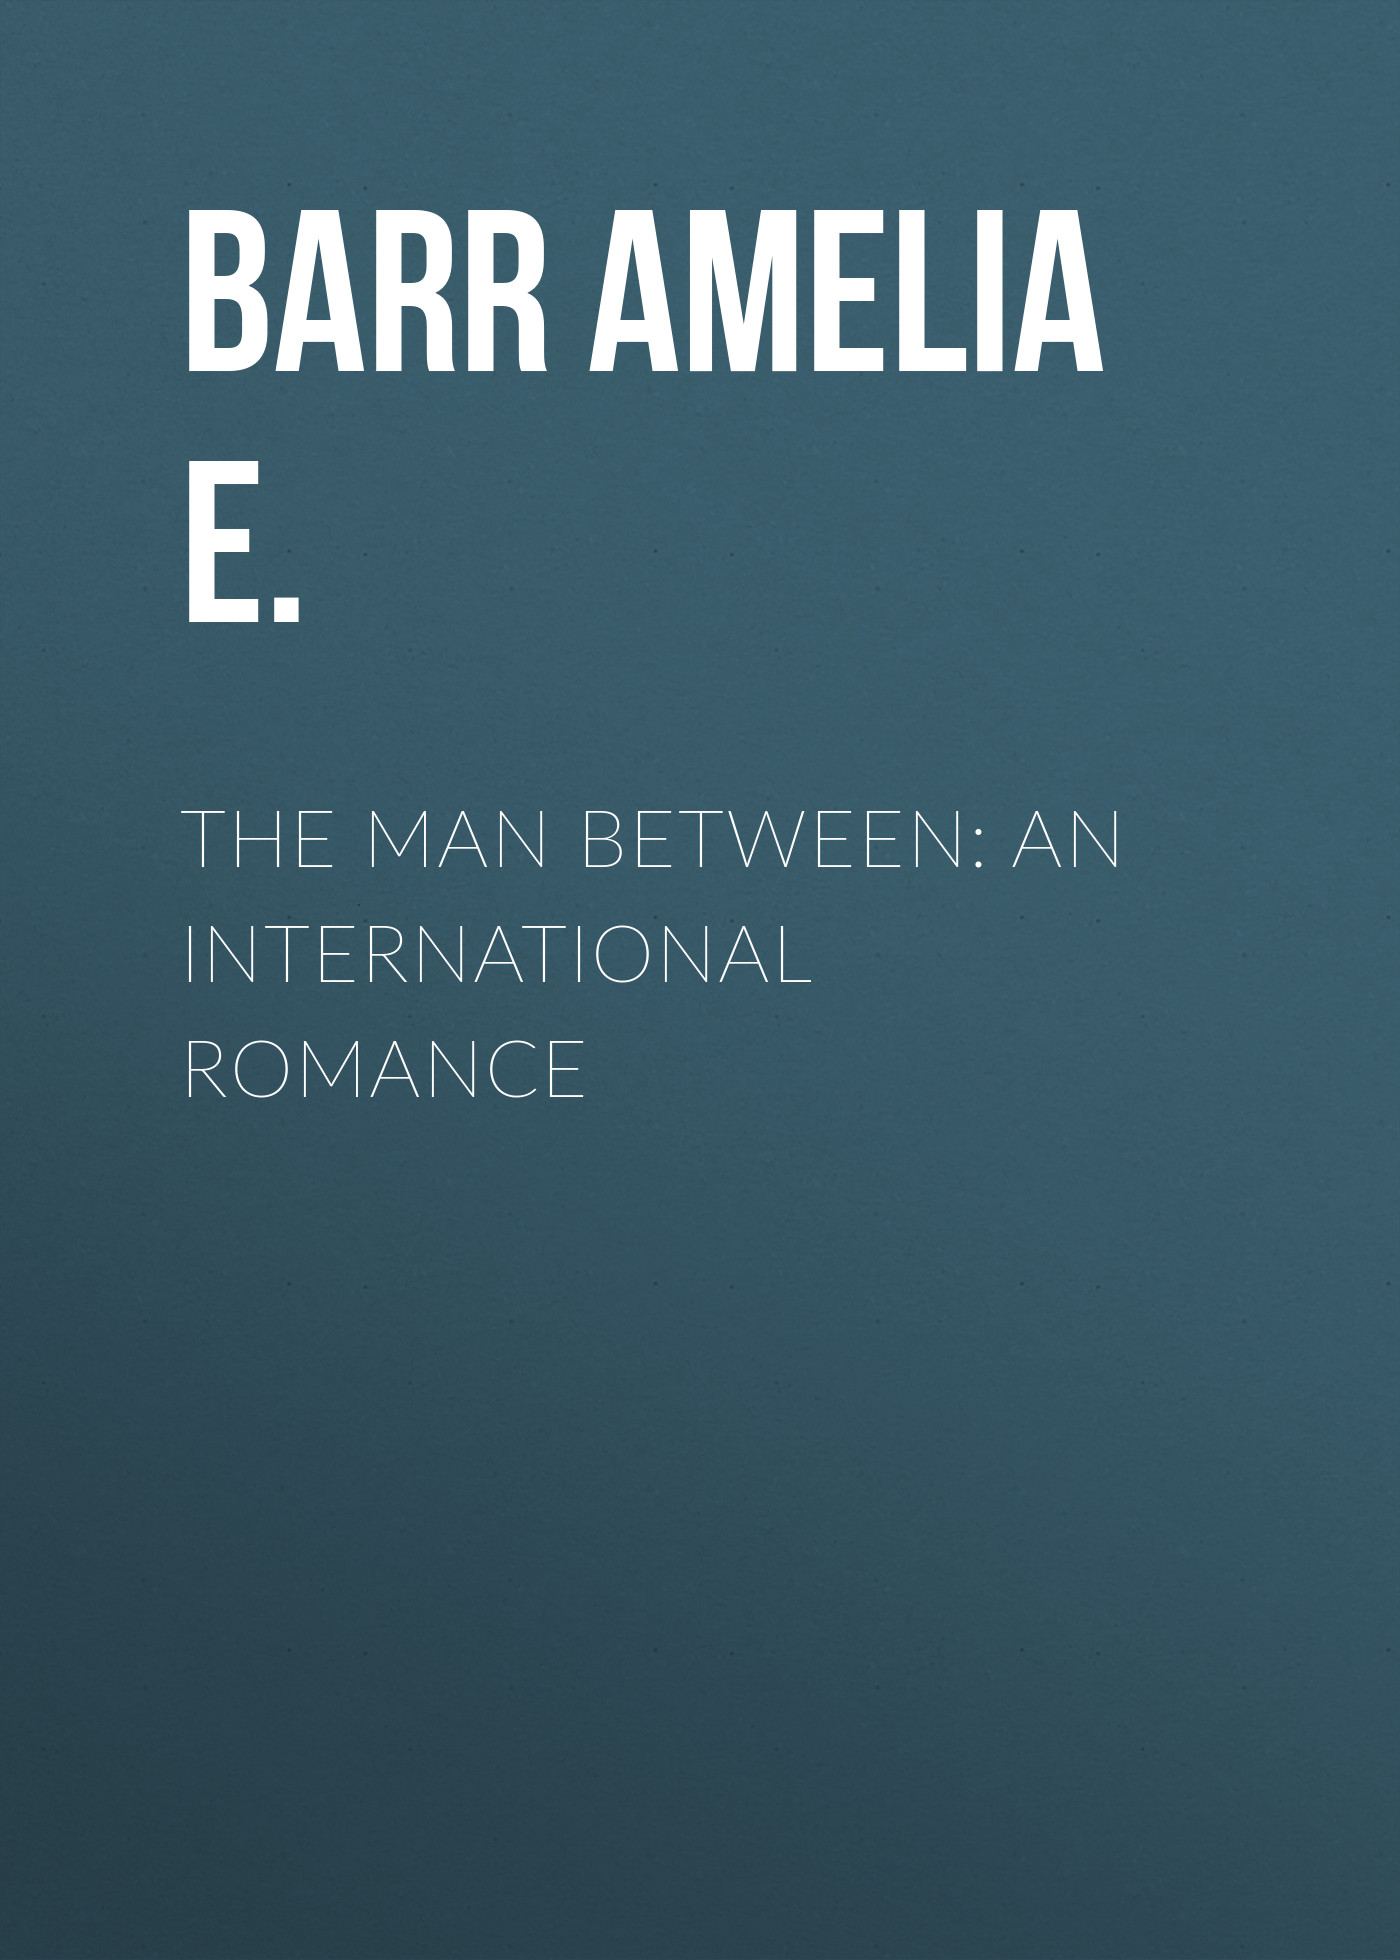 Barr Amelia E. The Man Between: An International Romance barr amelia e all the days of my life an autobiography page 5 page 10 page 8